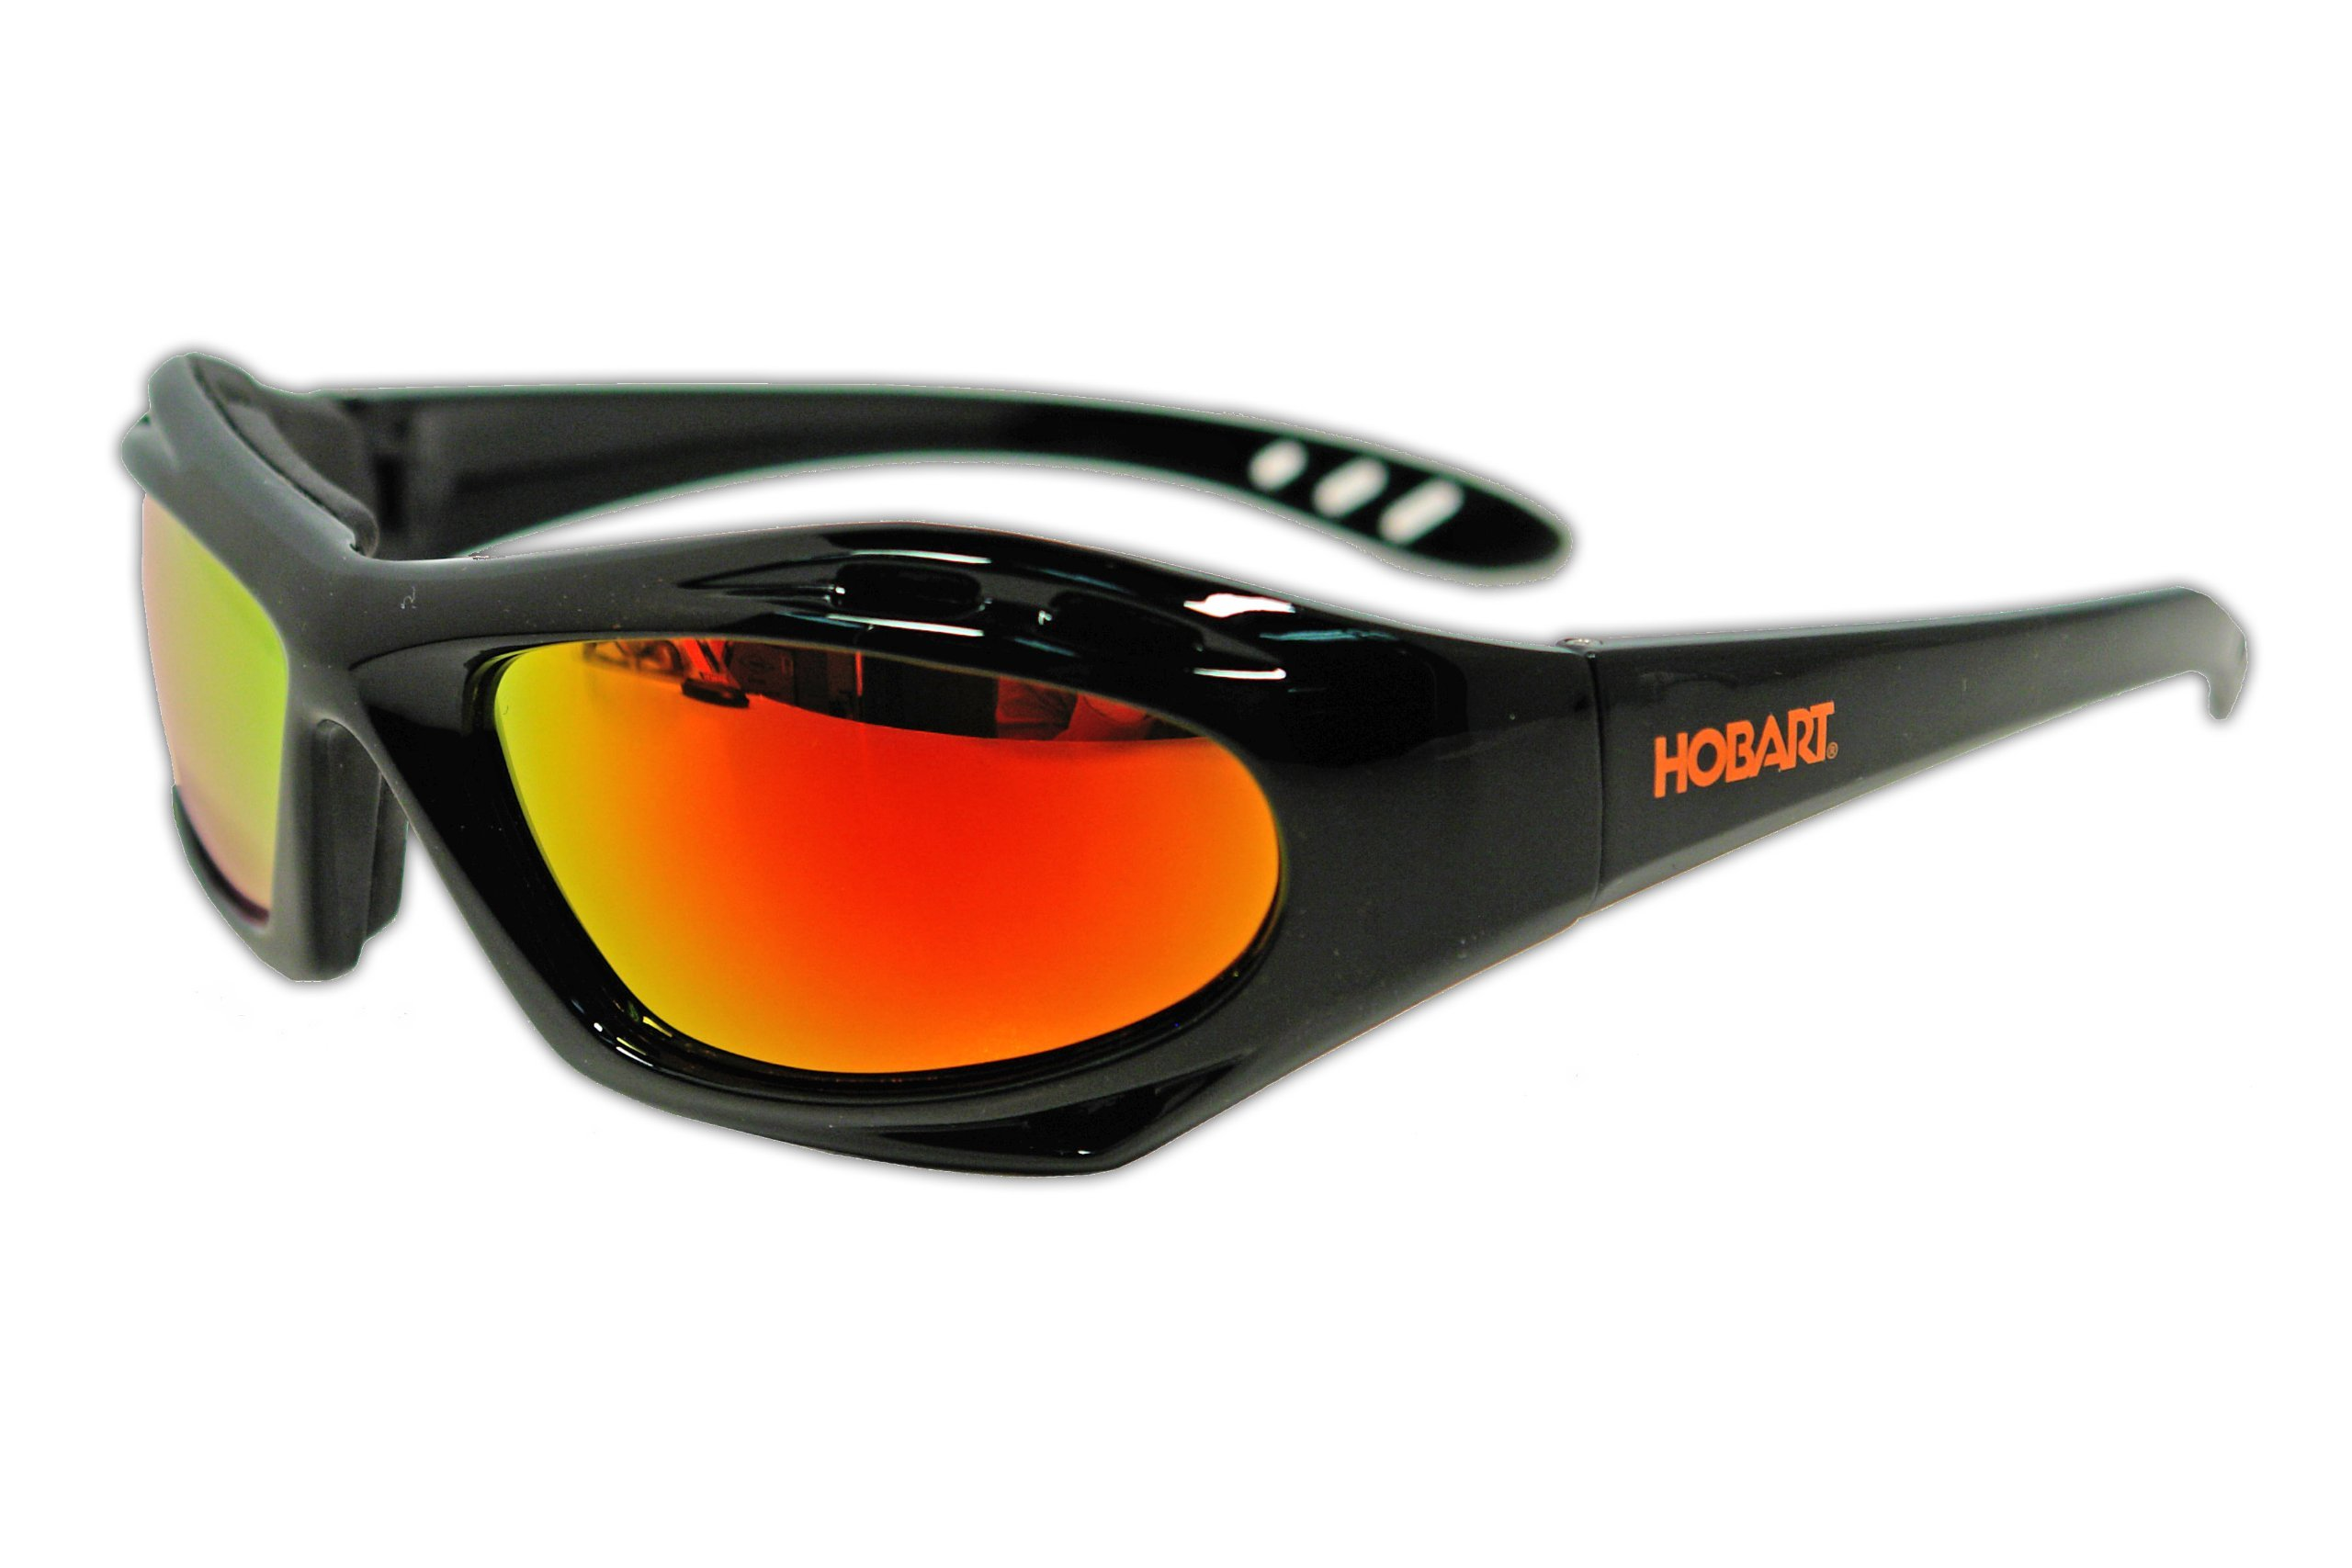 Hobart 770726 Shade 5, Mirrored Lens Safety Glasses by Hobart